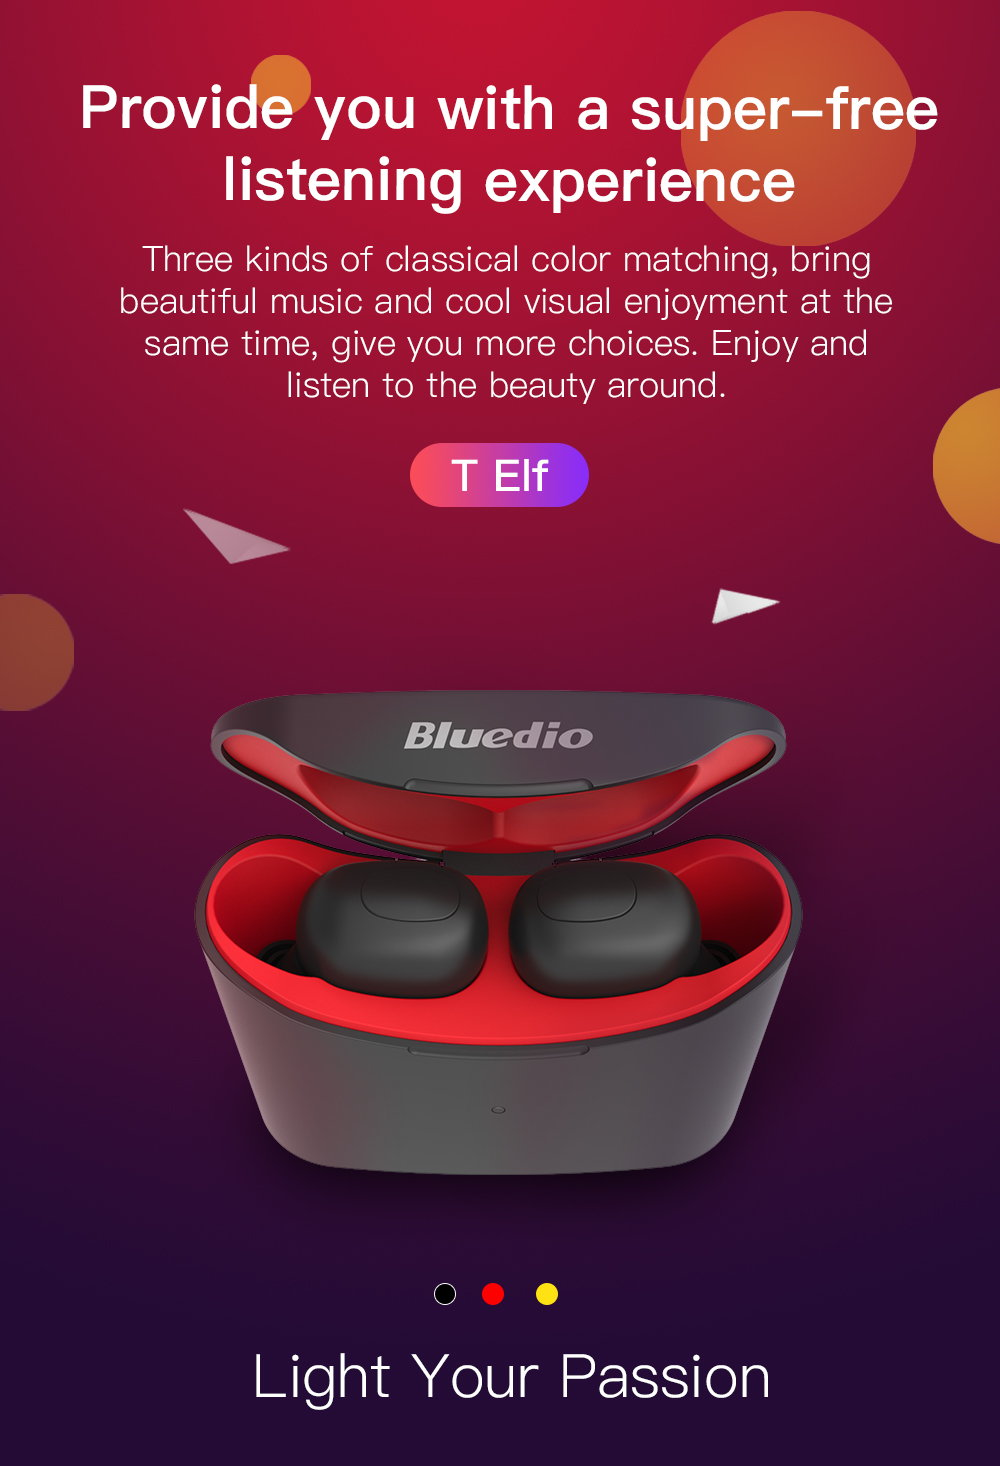 Bluedio Mini Wireless Bluetooth Earphones.jpg